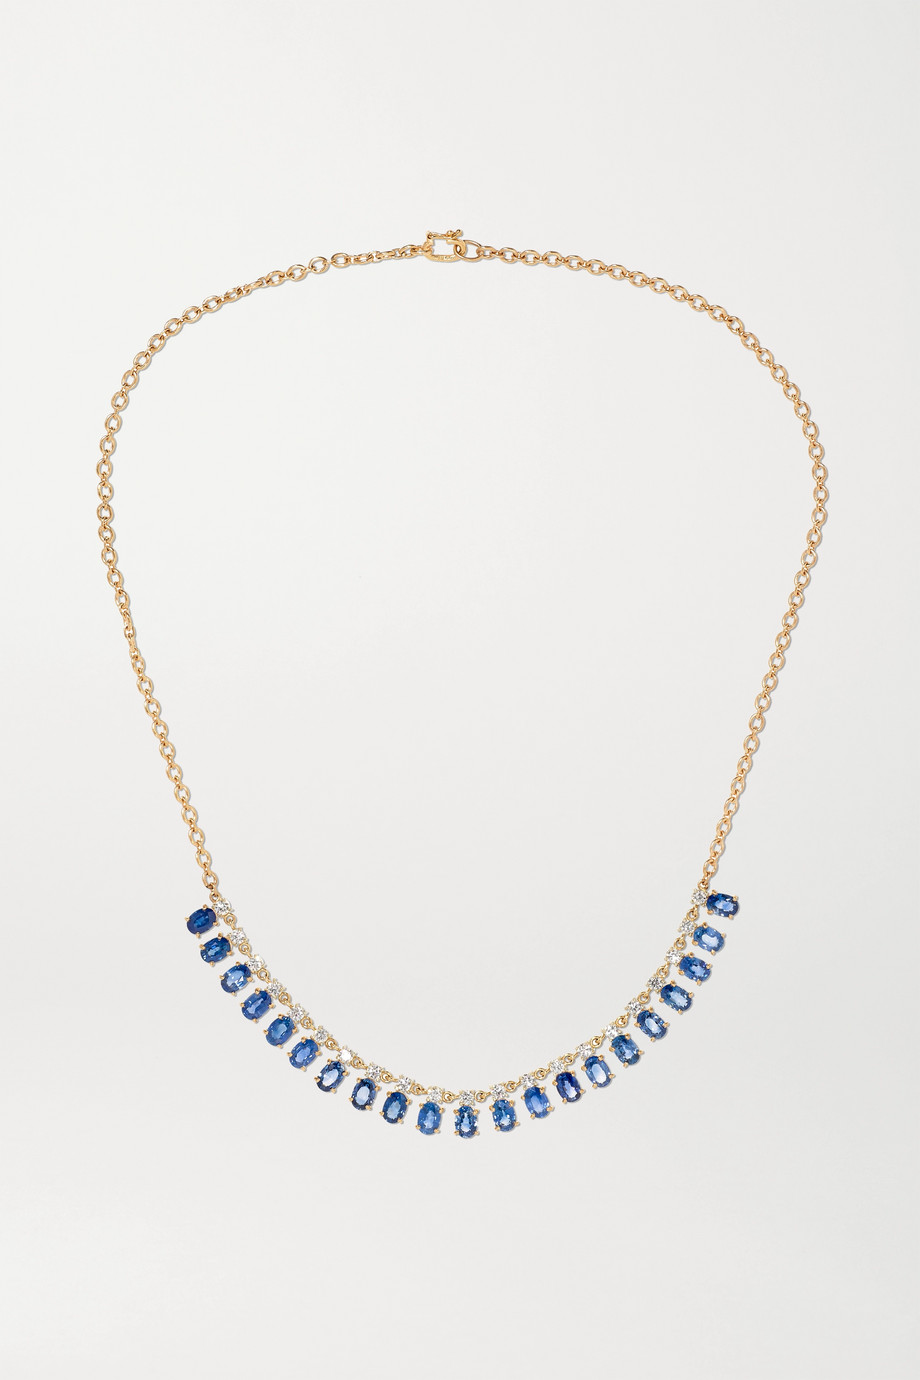 Irene Neuwirth 18-karat rose and white gold, sapphire and diamond necklace